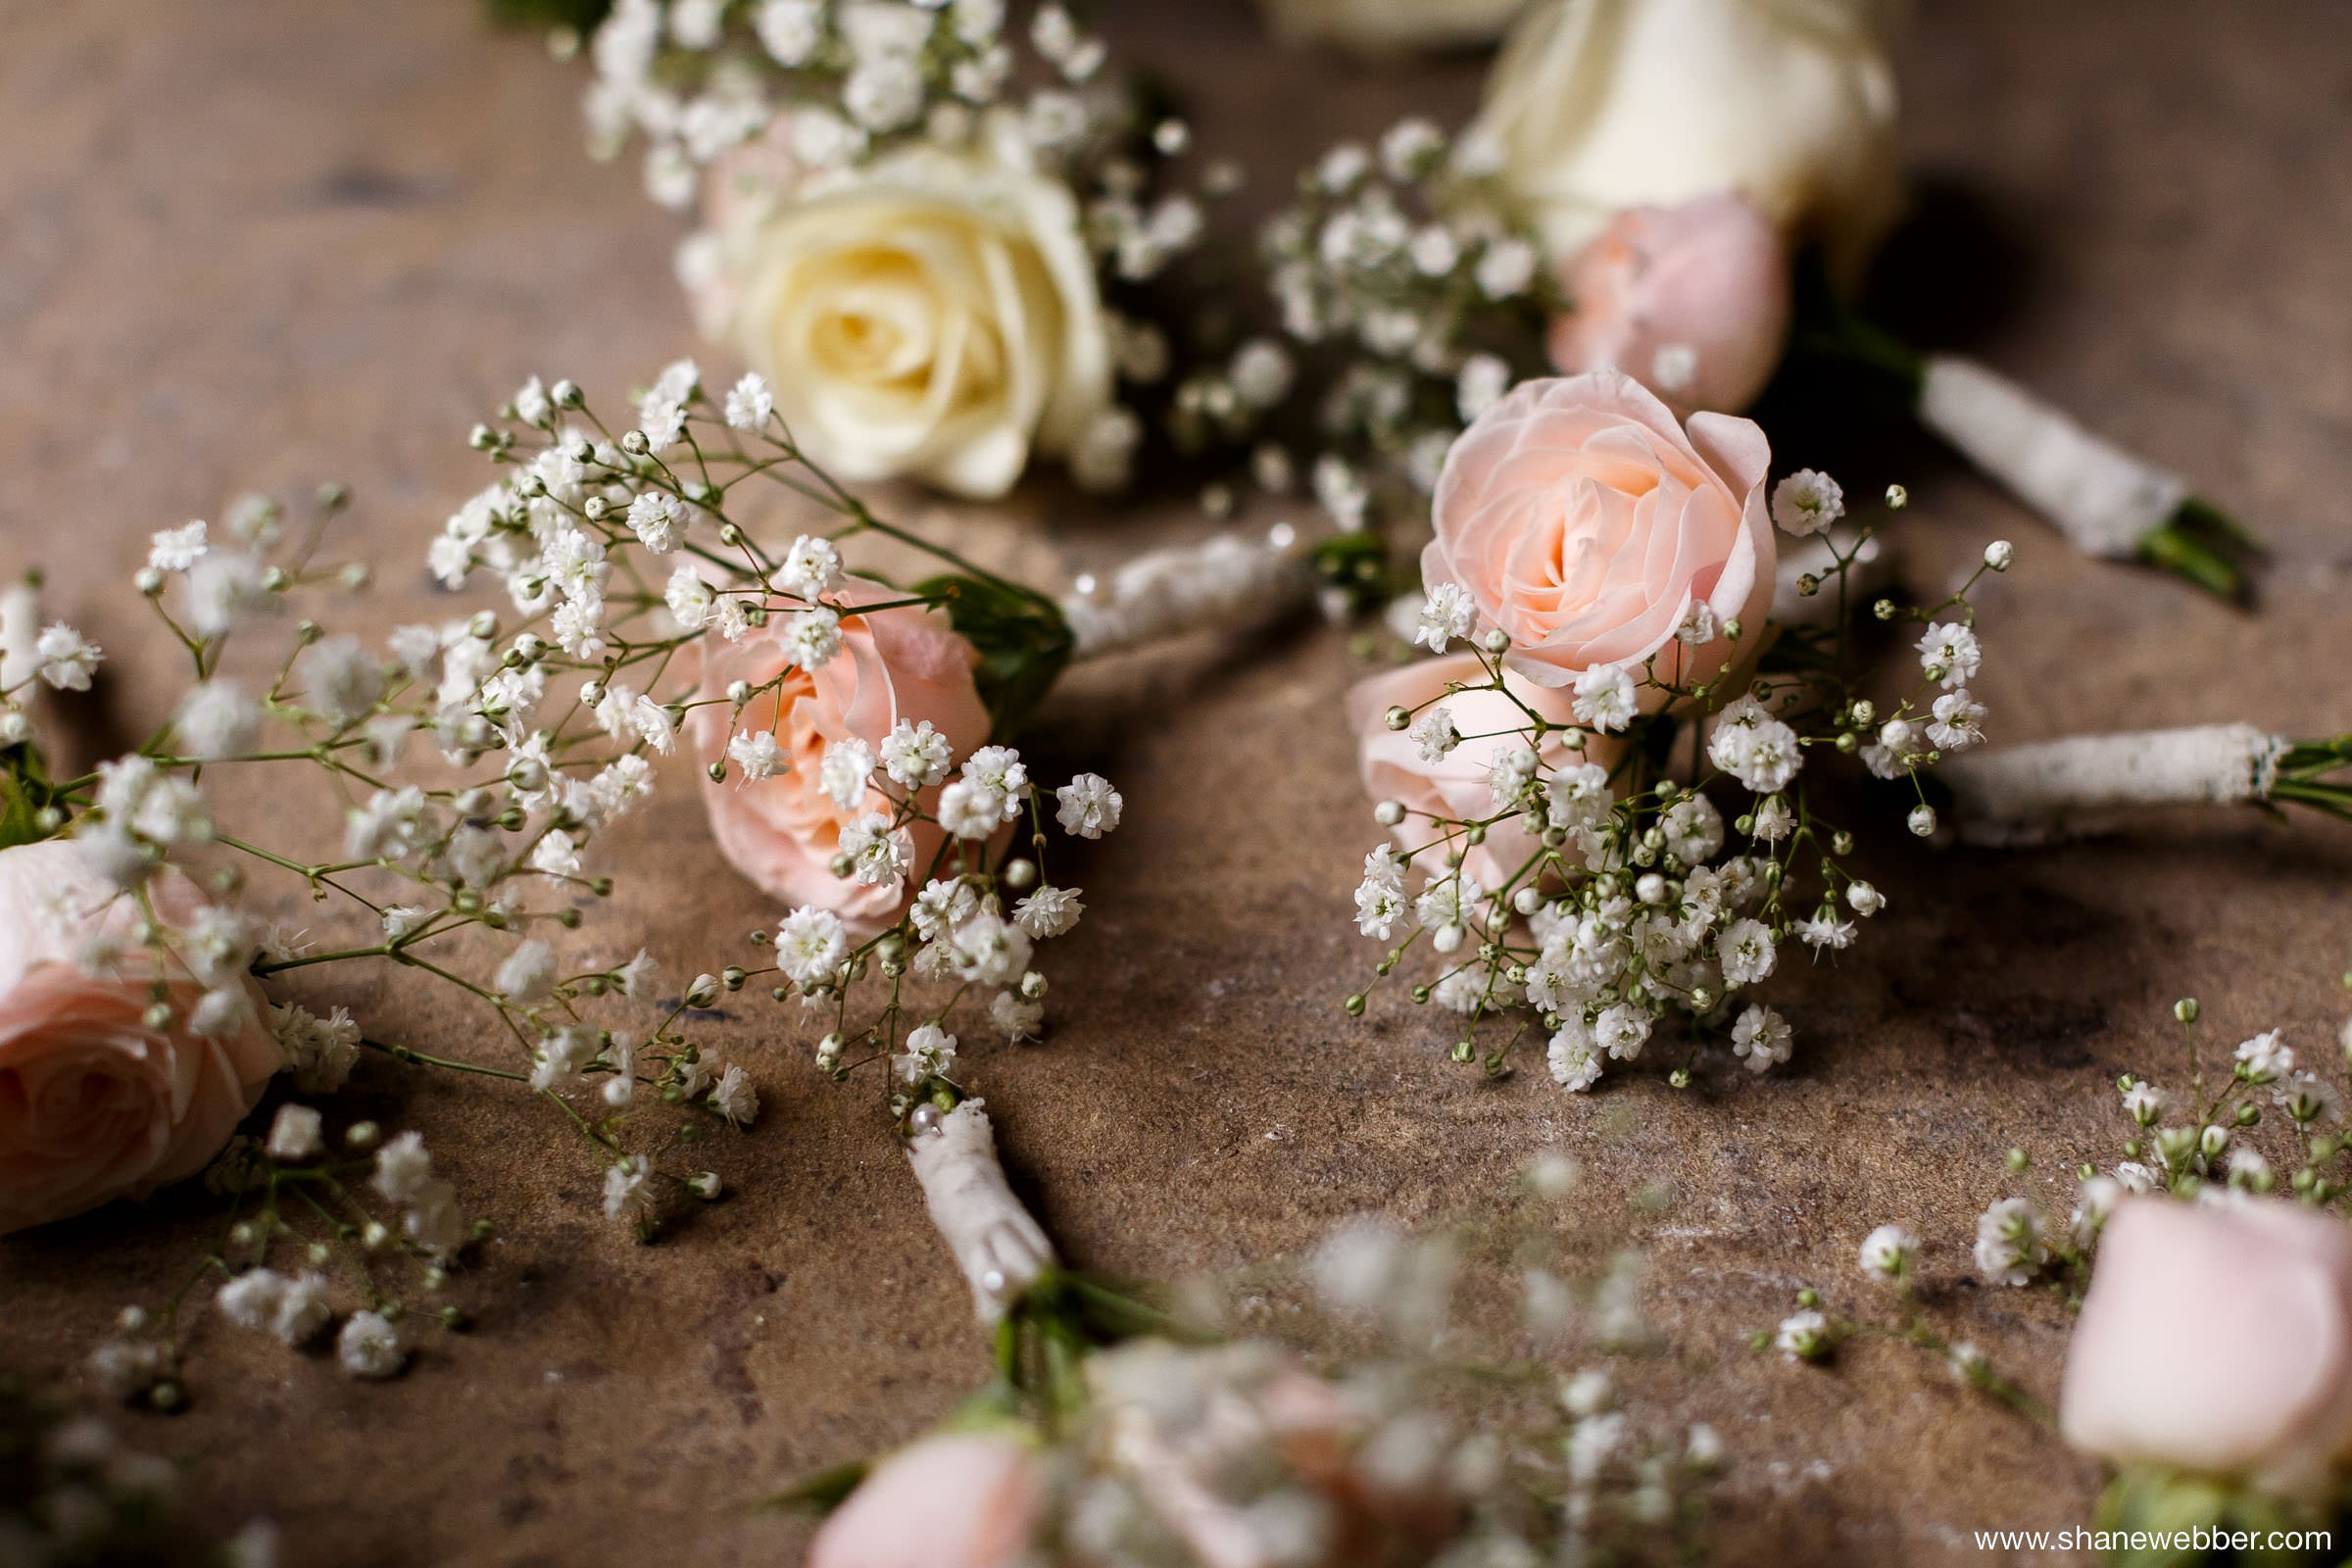 White and pink bridesmaids bouquets and corsages